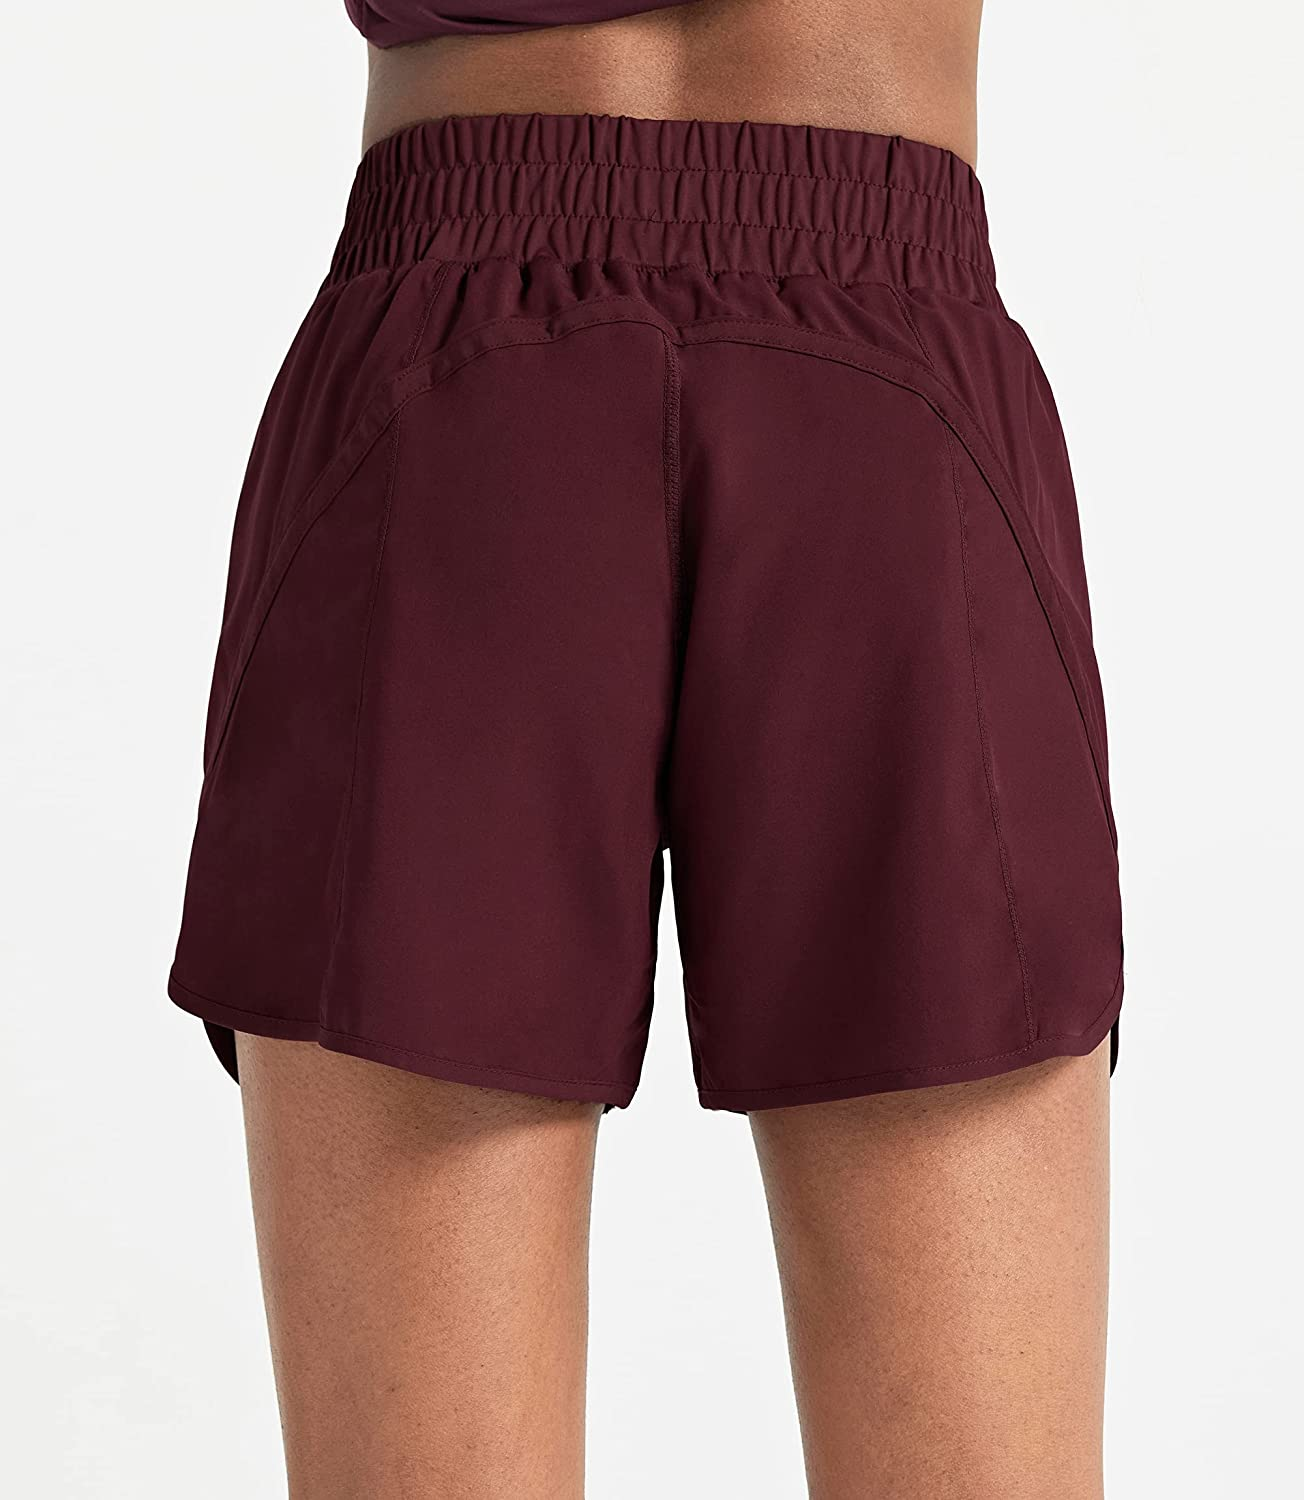 """ZUTY 5"""" Athletic Running Shorts for Women with Zip Pocket High Waisted Quick Dry Workout Gym Shorts with Liner: Clothing"""